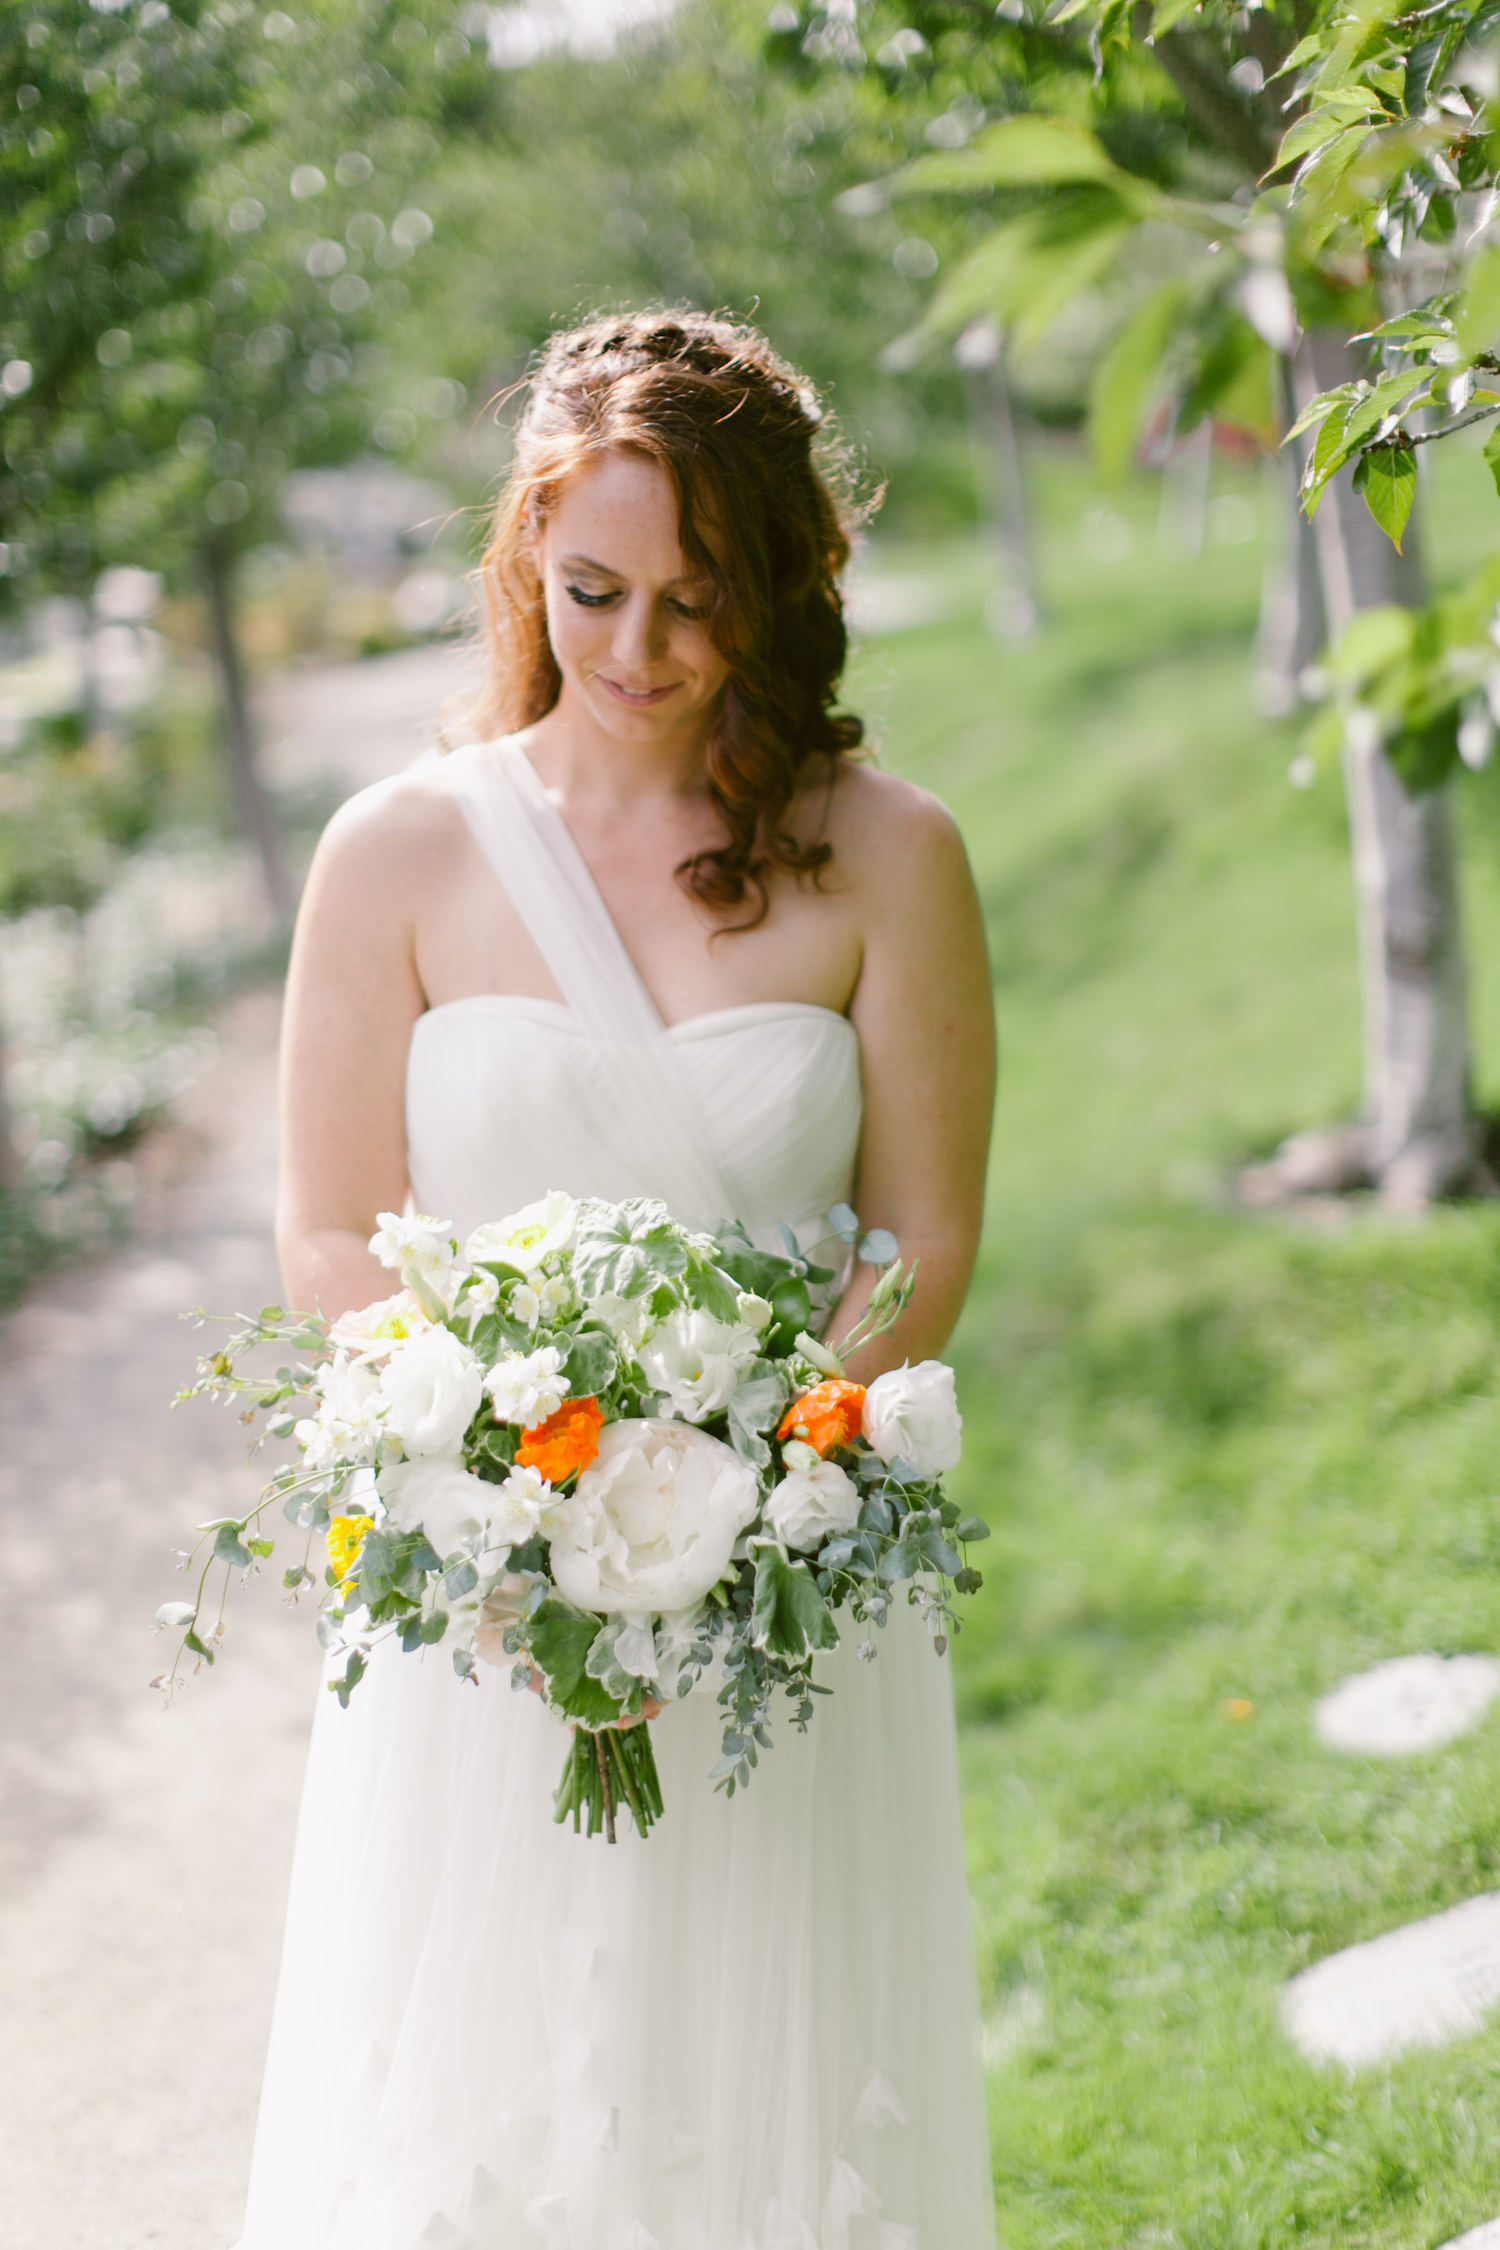 White & citrus bridal bouquet for a raging garden party by San Diego wedding florist, Compass Floral.